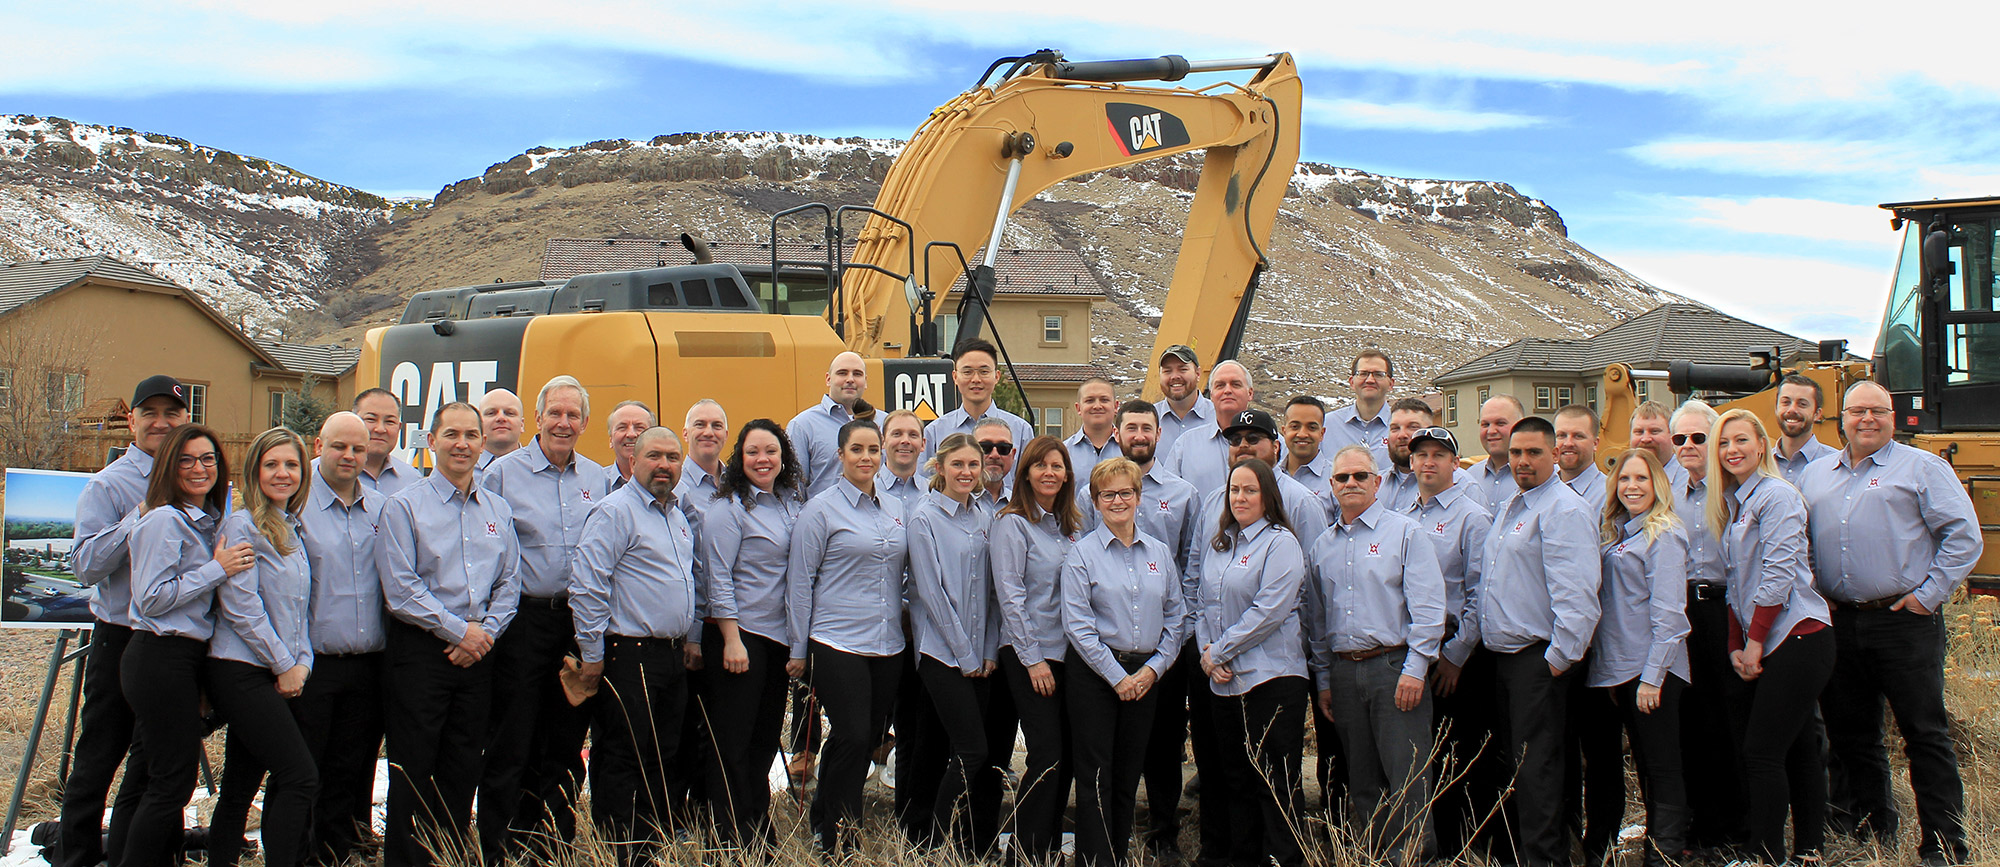 Well Master group photo of the employees wearing matching well master button up shirts and standing in front of a construction crane with the mountains behind them